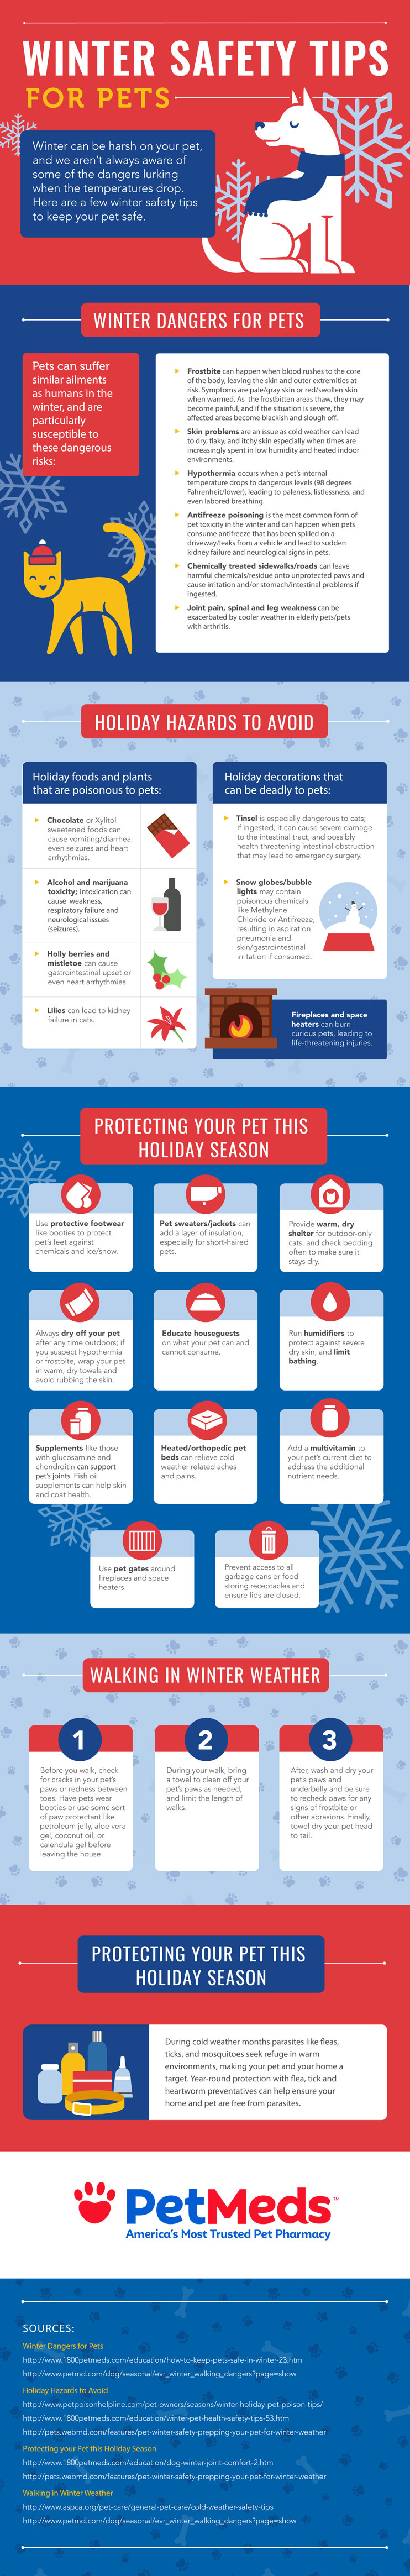 Click to Enlarge - Pet Safety During Holidays & Winter Weather Infographic